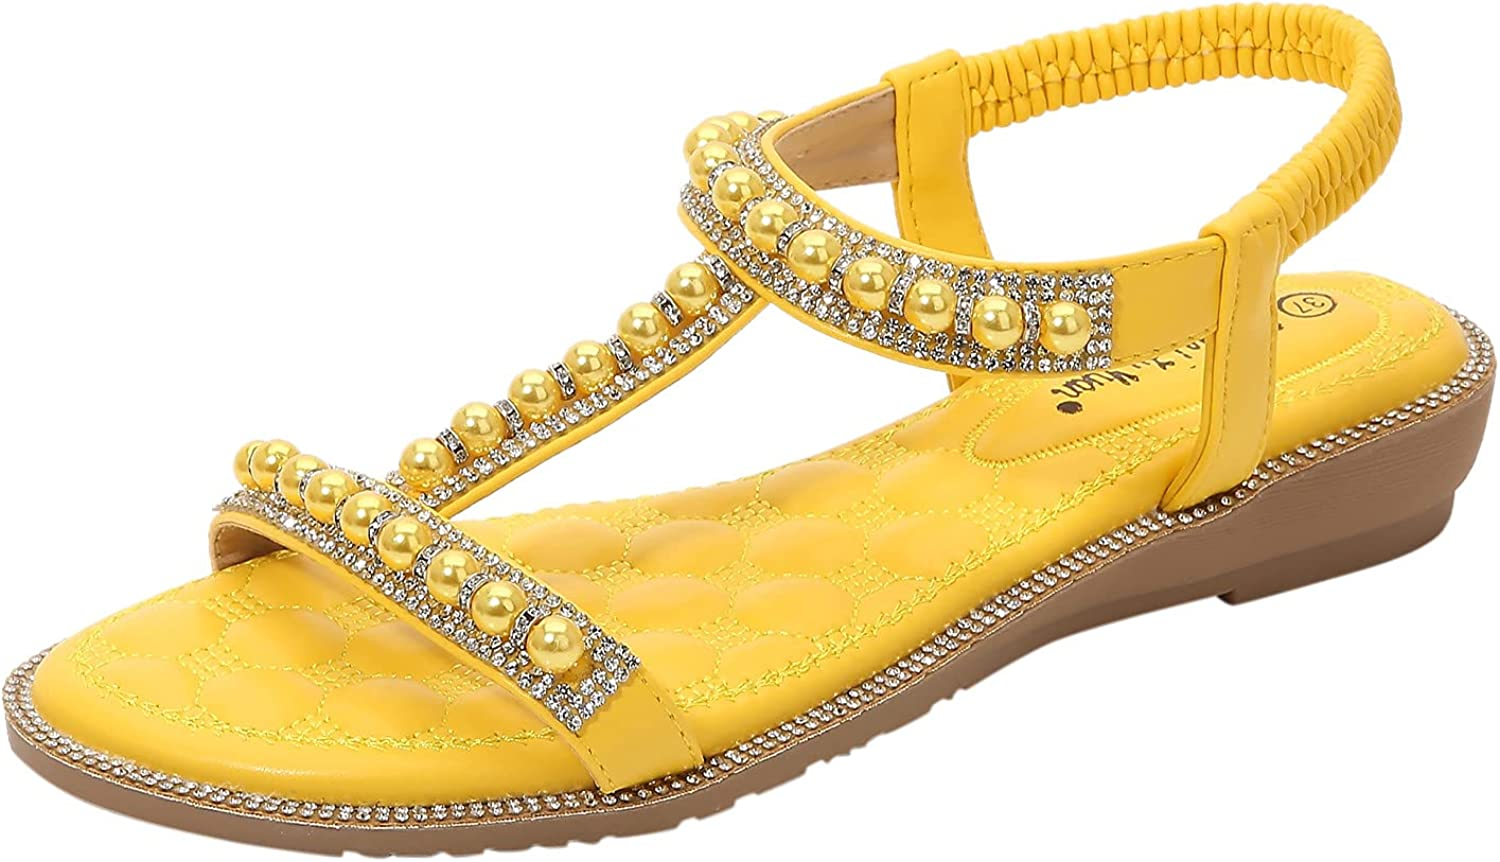 USYFAKGH Sandals For Women Casual Summer Shoes Sandals For Women